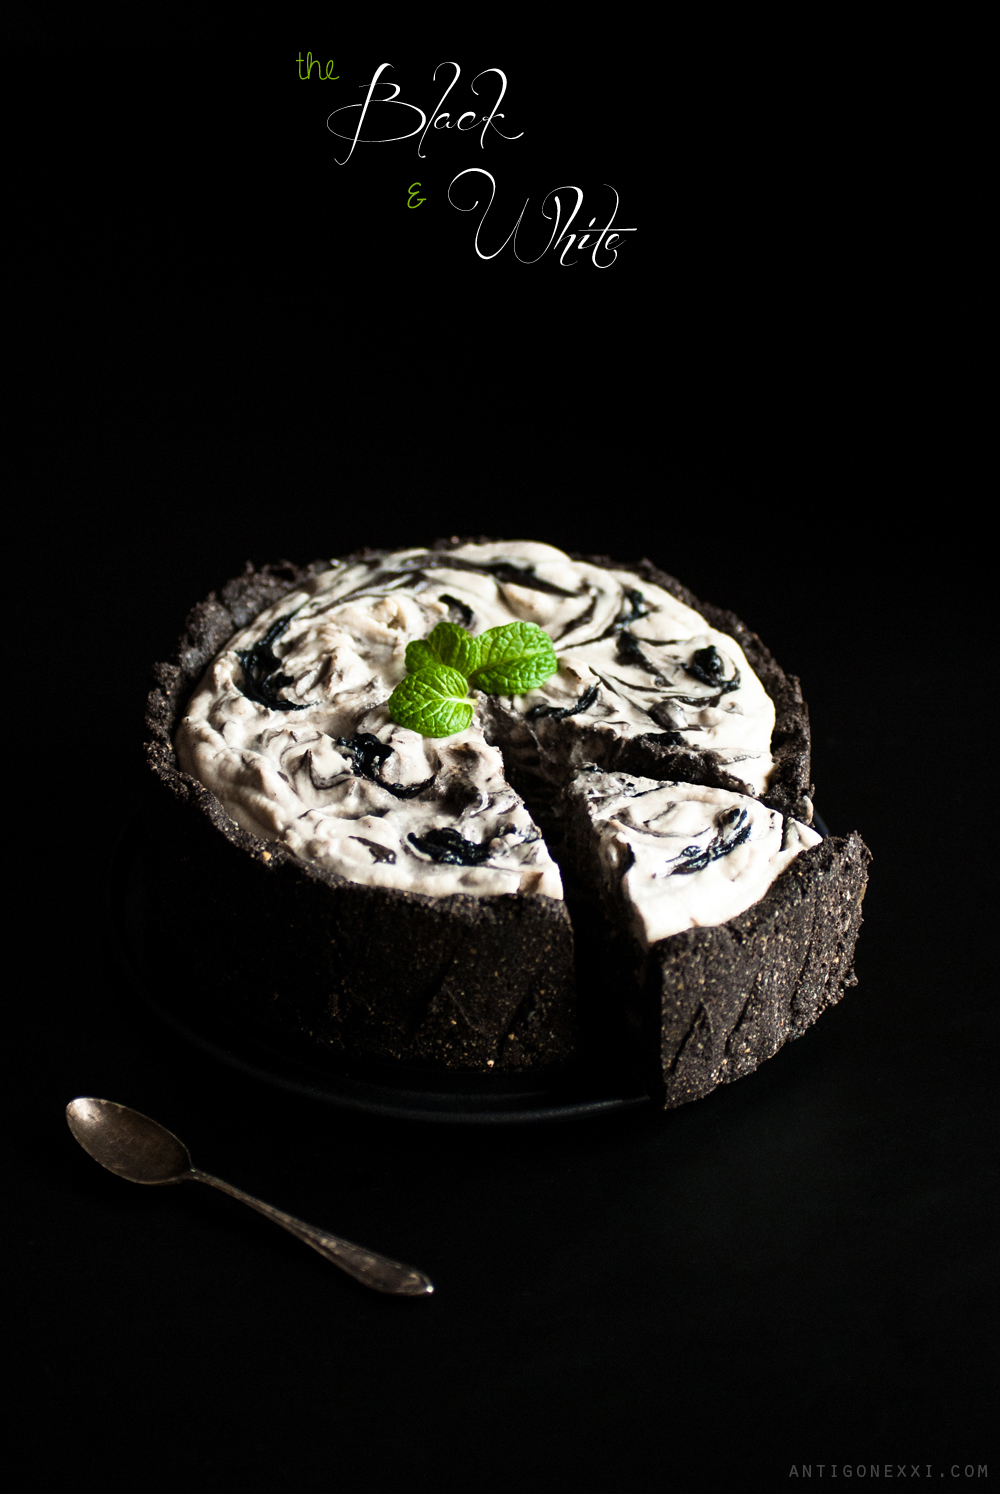 The Black & White Cake - vegan / raw - antigone21.com